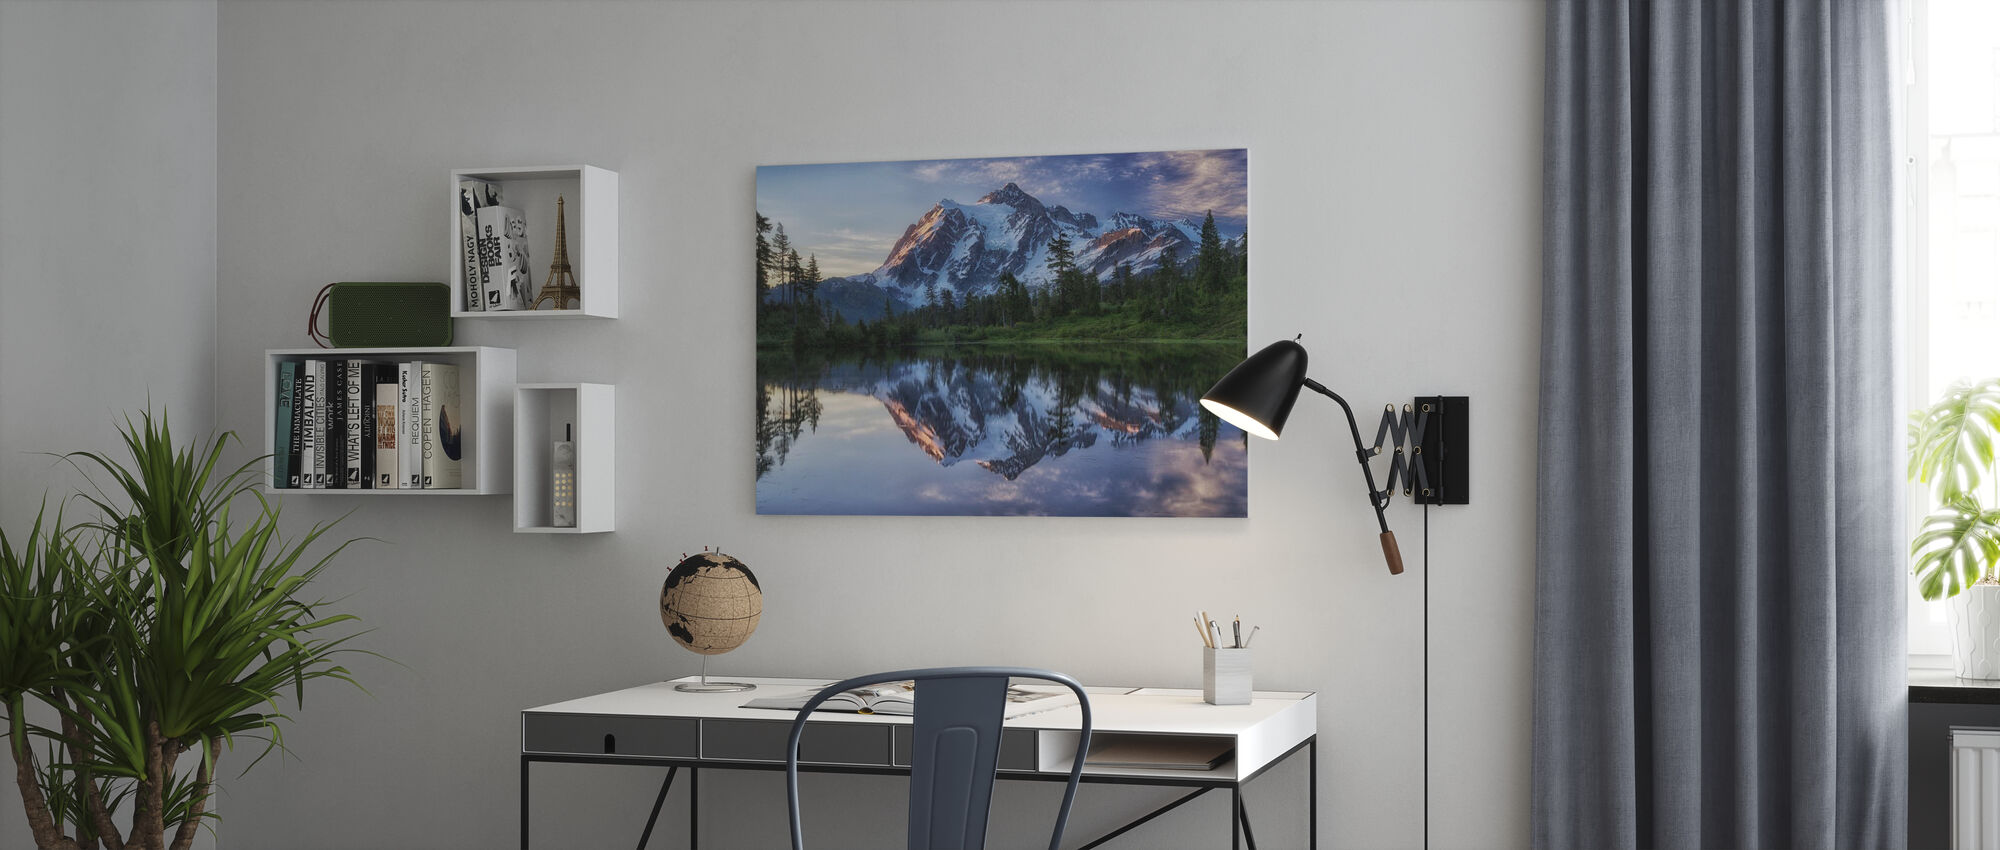 Sunrise on Mount Shuksan, Washington, USA - Canvas print - Office